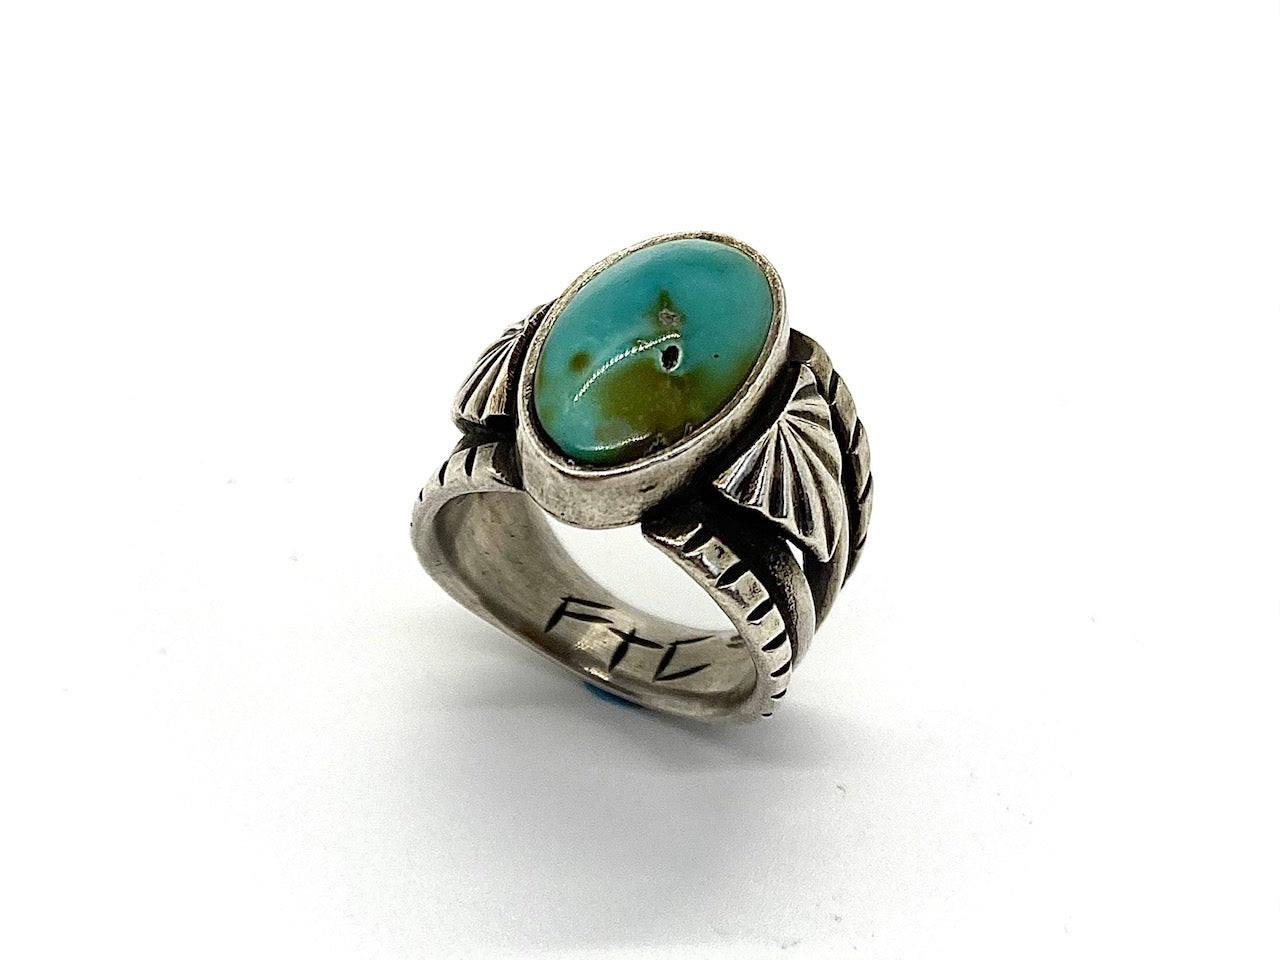 Tufa Cast Sterling Silver Sierra Nevada Turquoise Ring